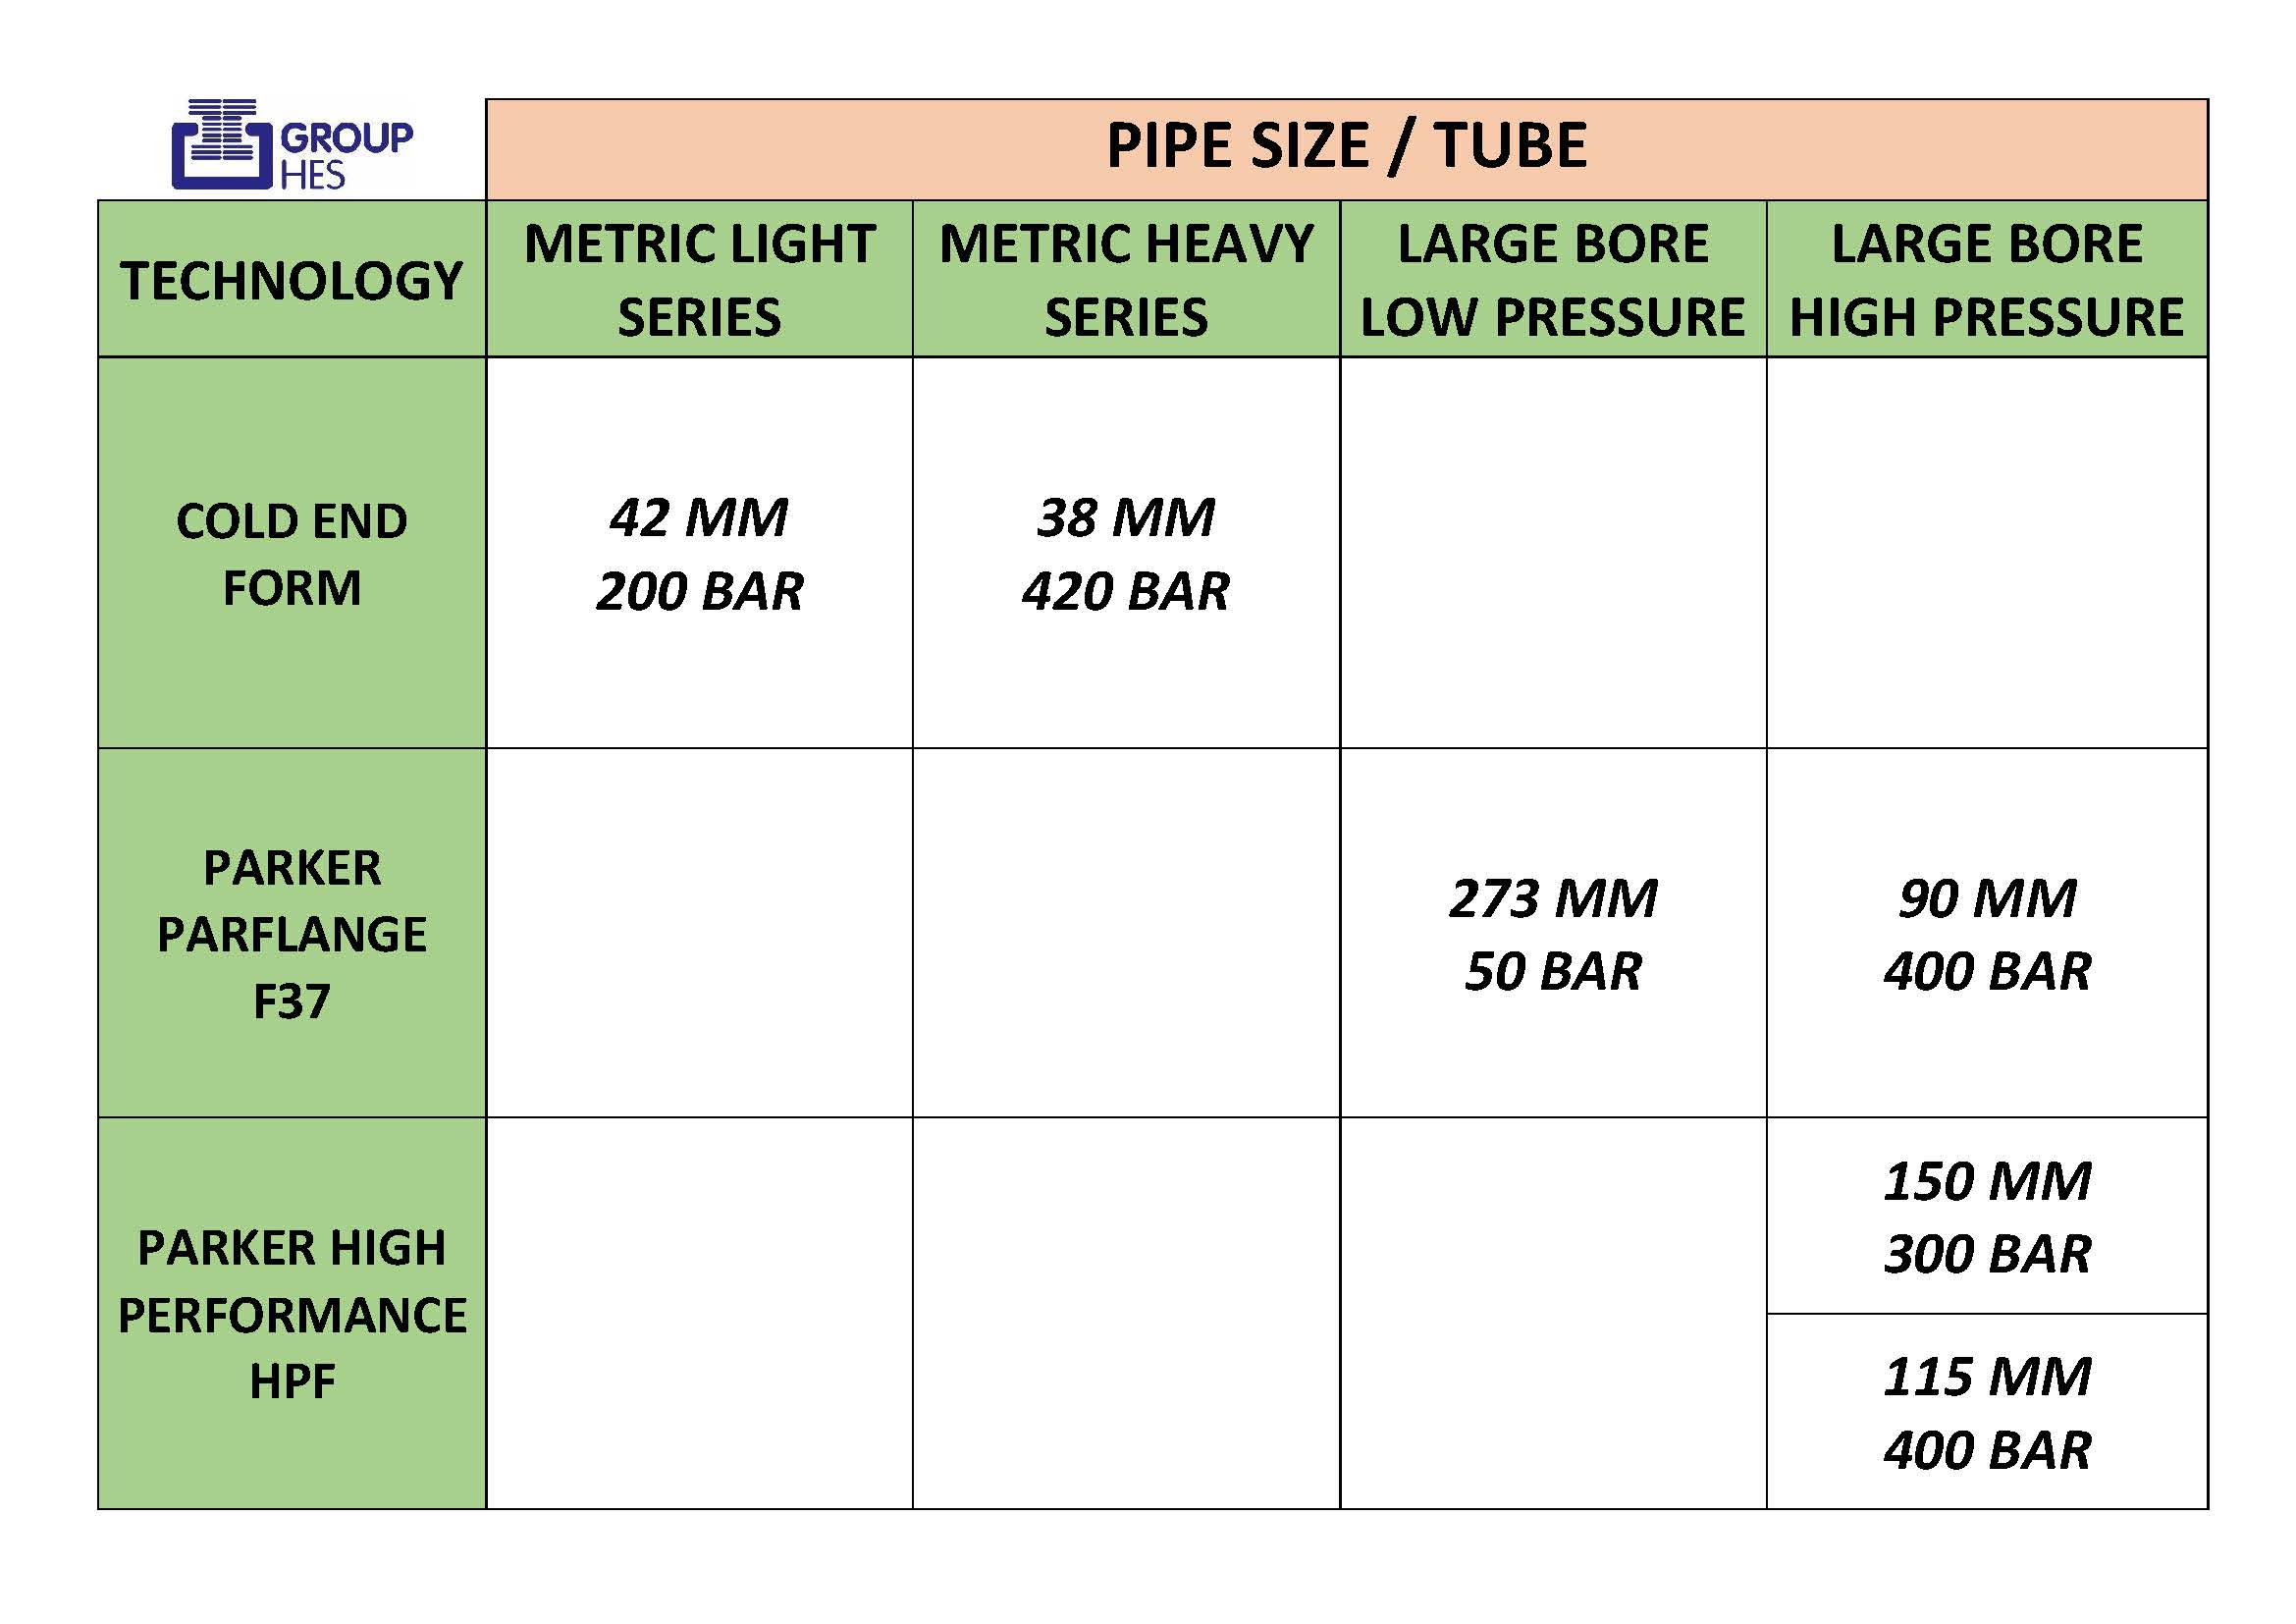 Parker pipe size chart